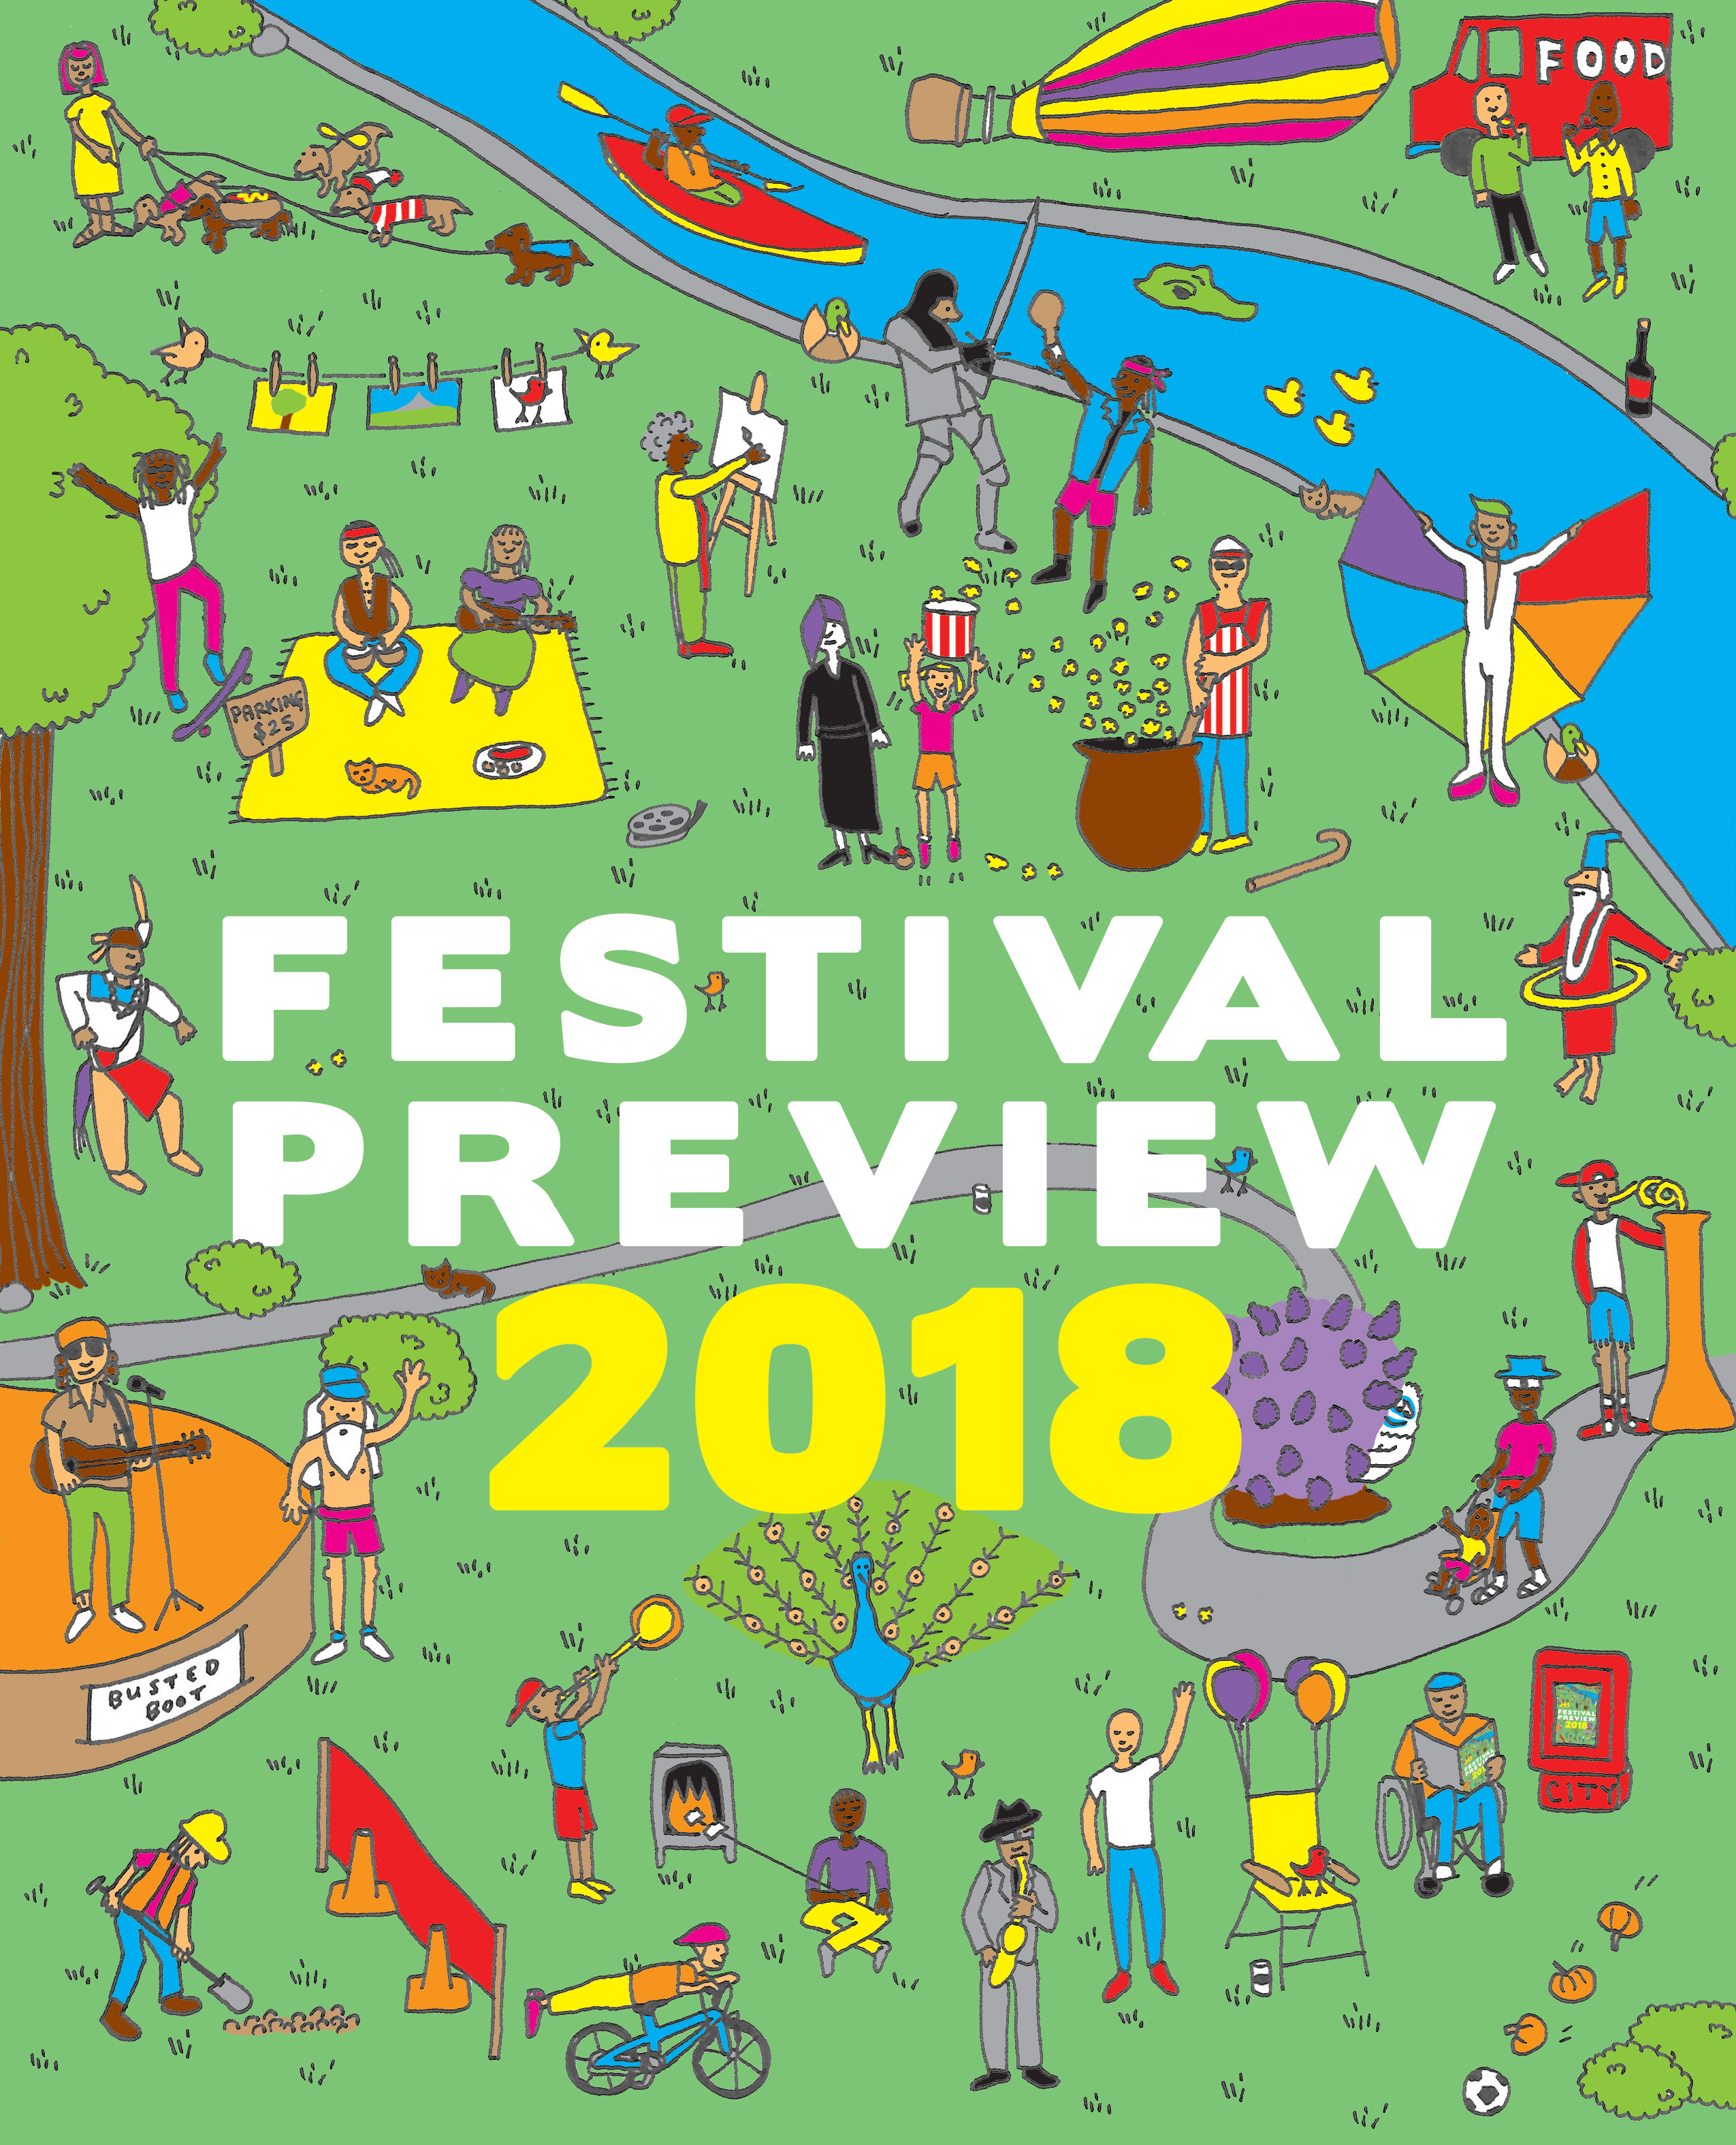 Festival Preview cover, 2018